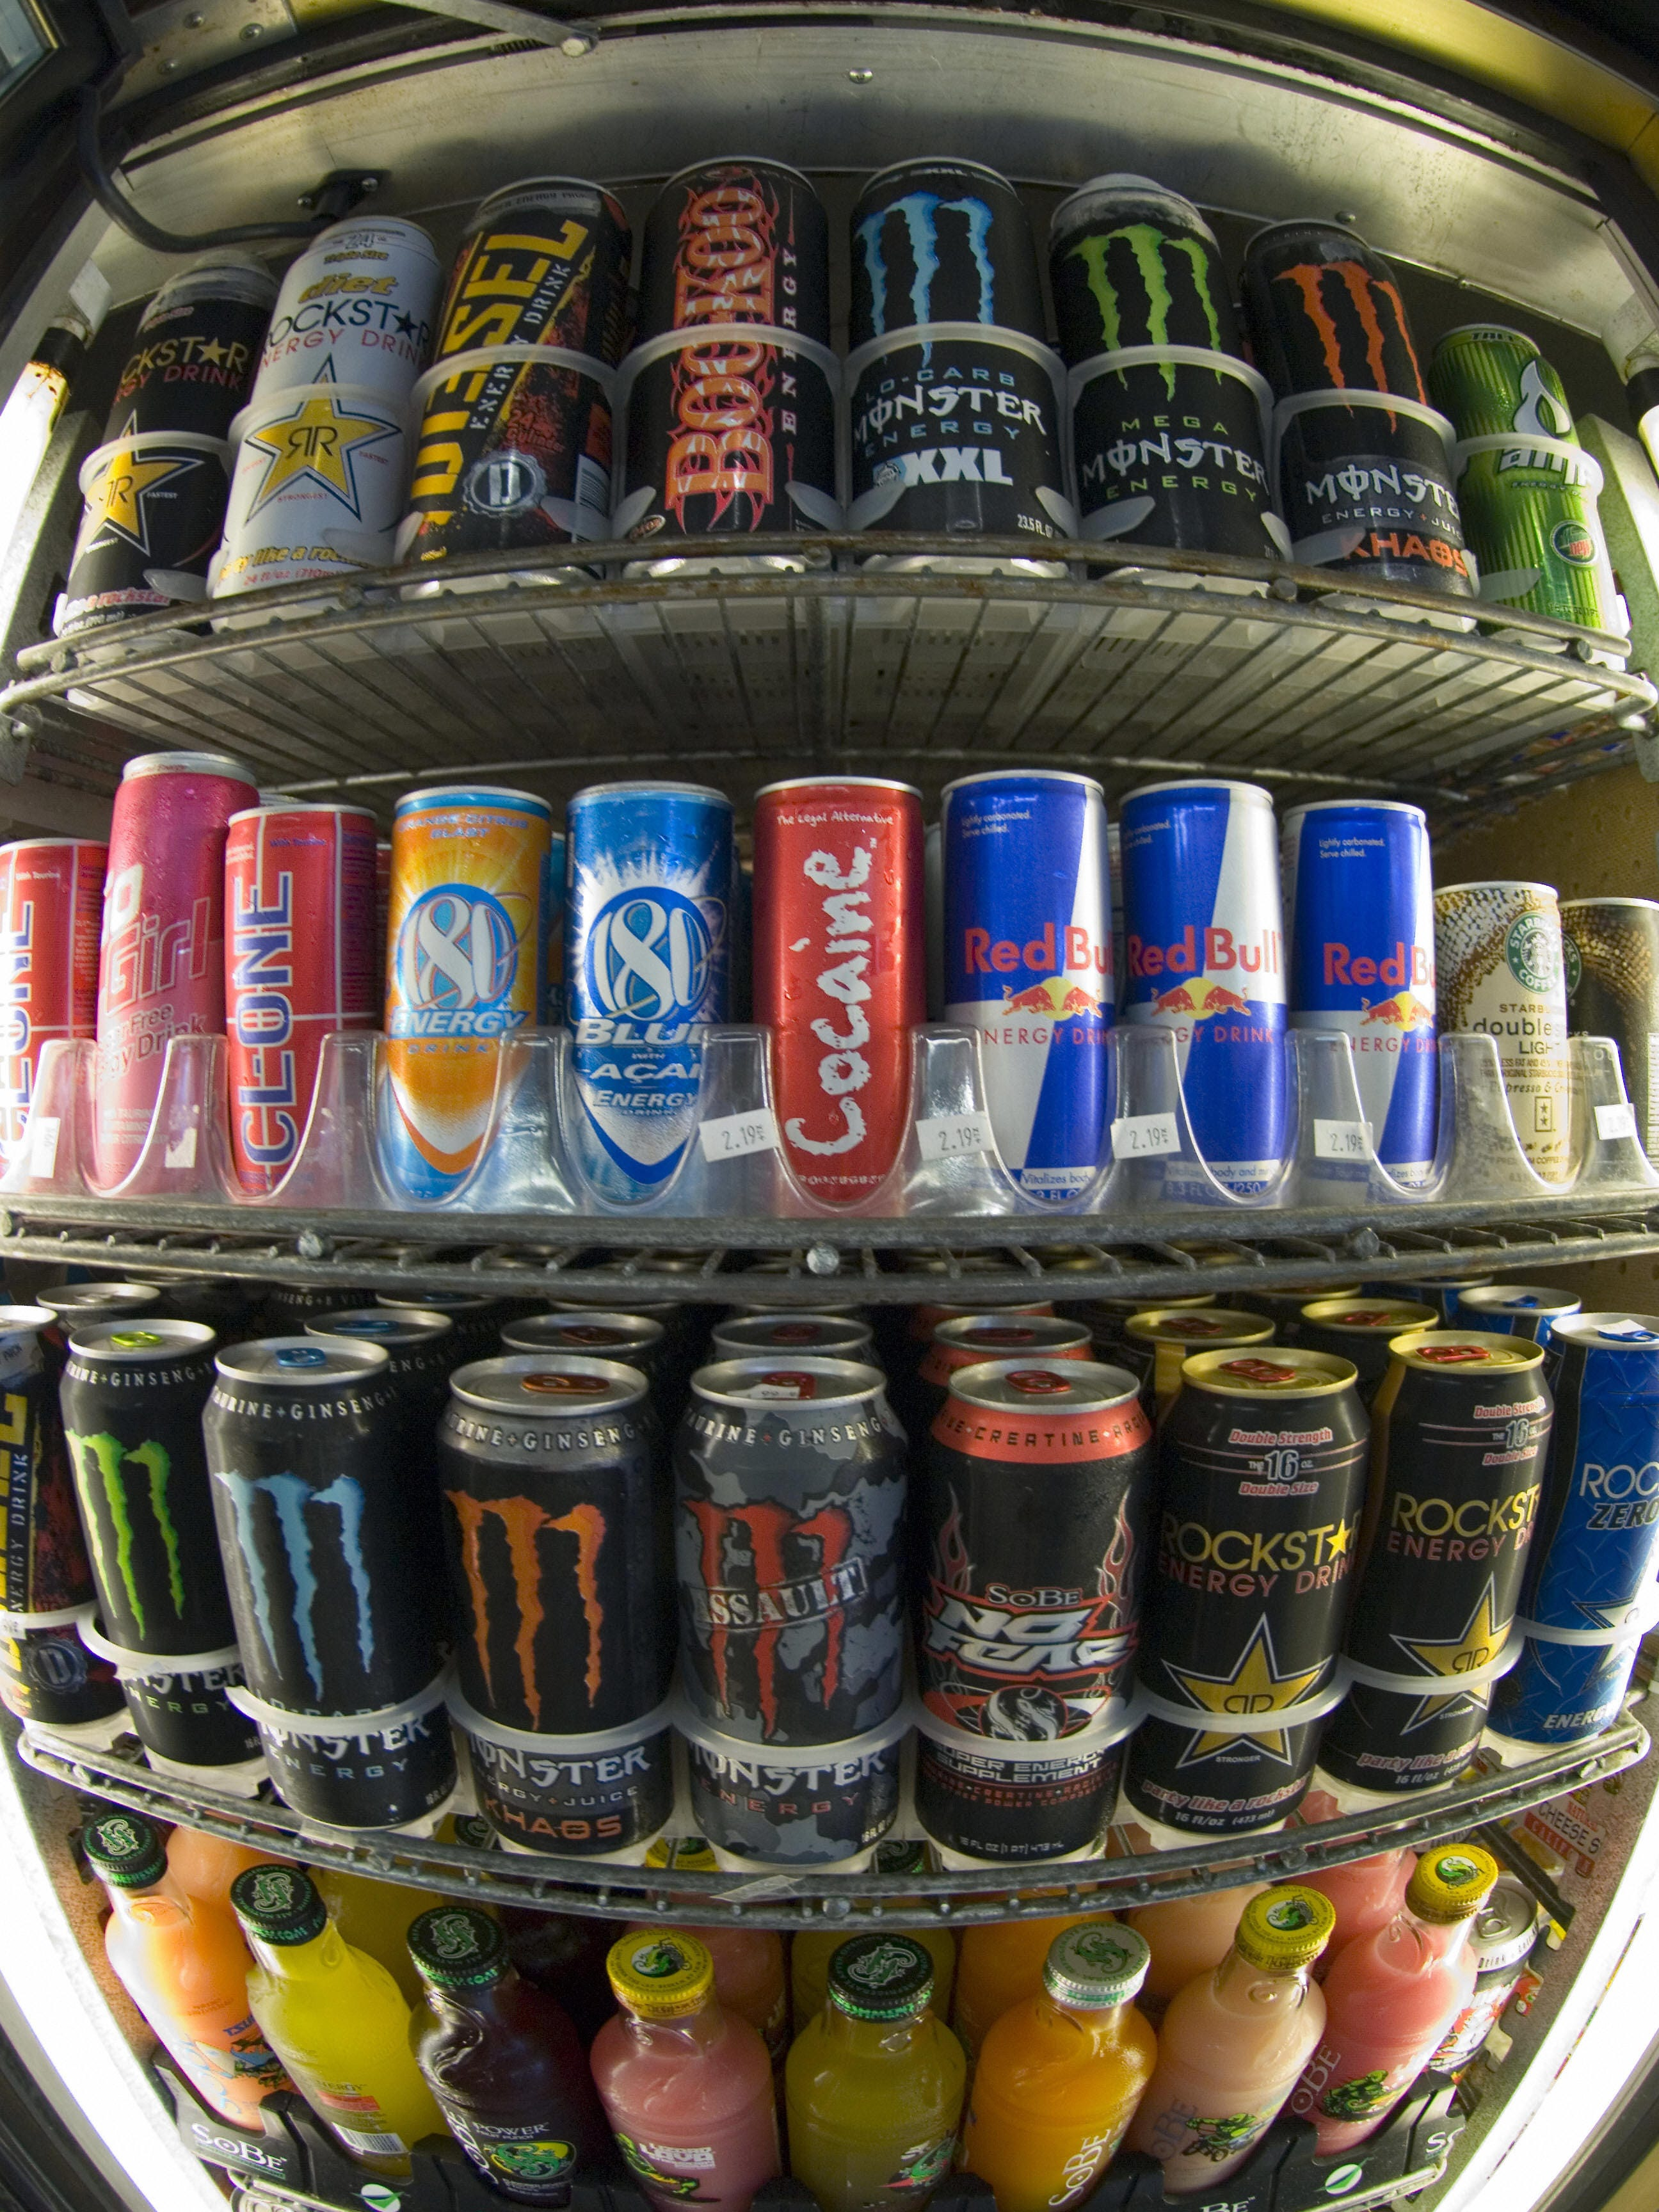 Study: Don't sell energy drinks to kids